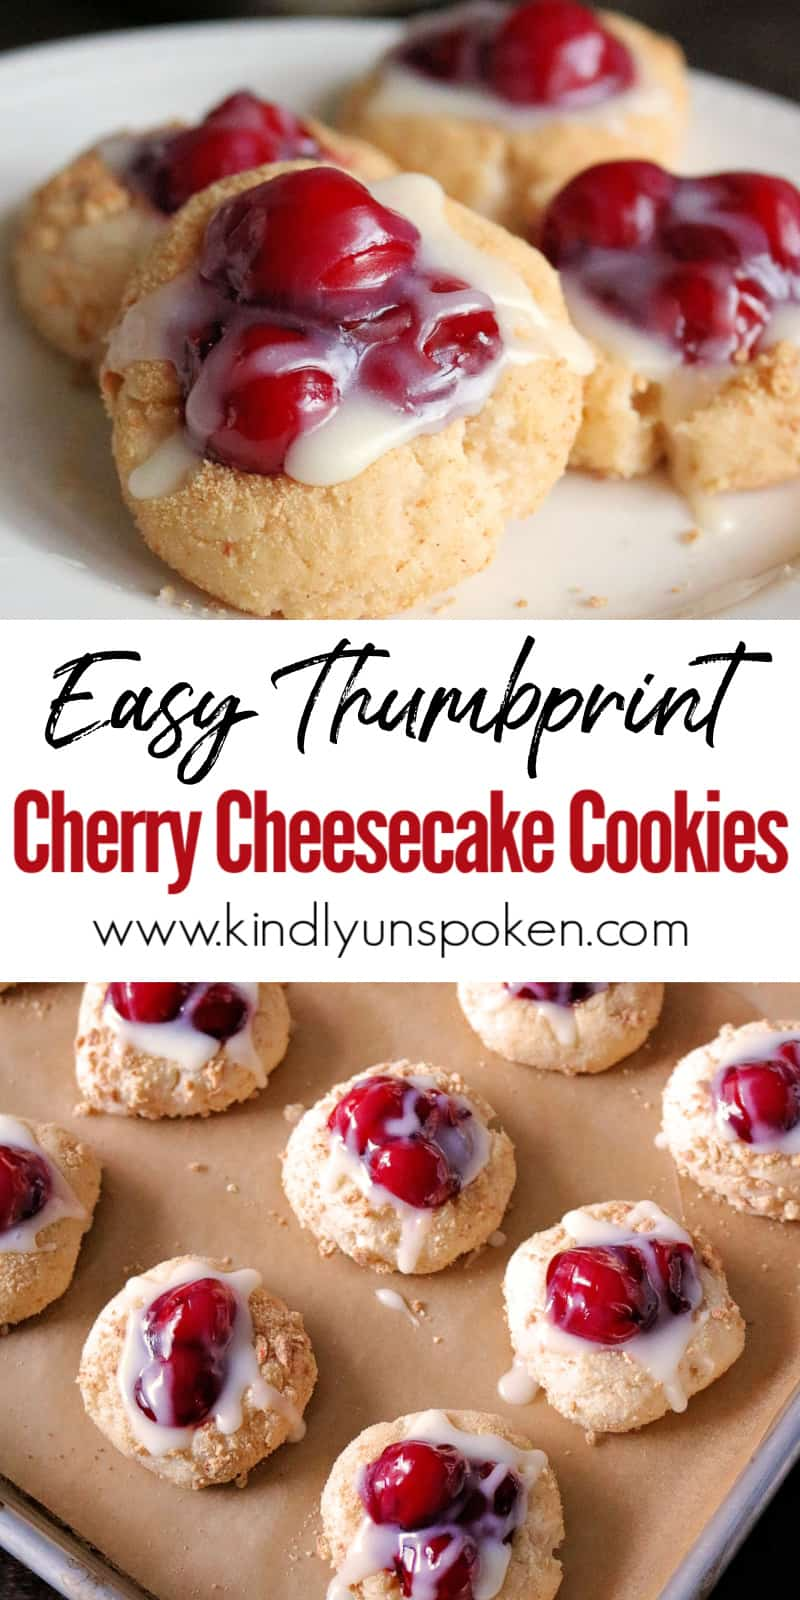 These Easy Cherry Cheesecake Cookies are delicious, buttery cheesecake cookies rolled in graham cracker crumbs, filled with cherry pie filling, and drizzled with white chocolate. These cherry thumbprint cookies are decadent, beautiful, and will be your new favorite cookie recipe to make for Christmas and the holidays! #christmascookies #cherrycookies #cookies #cookierecipe